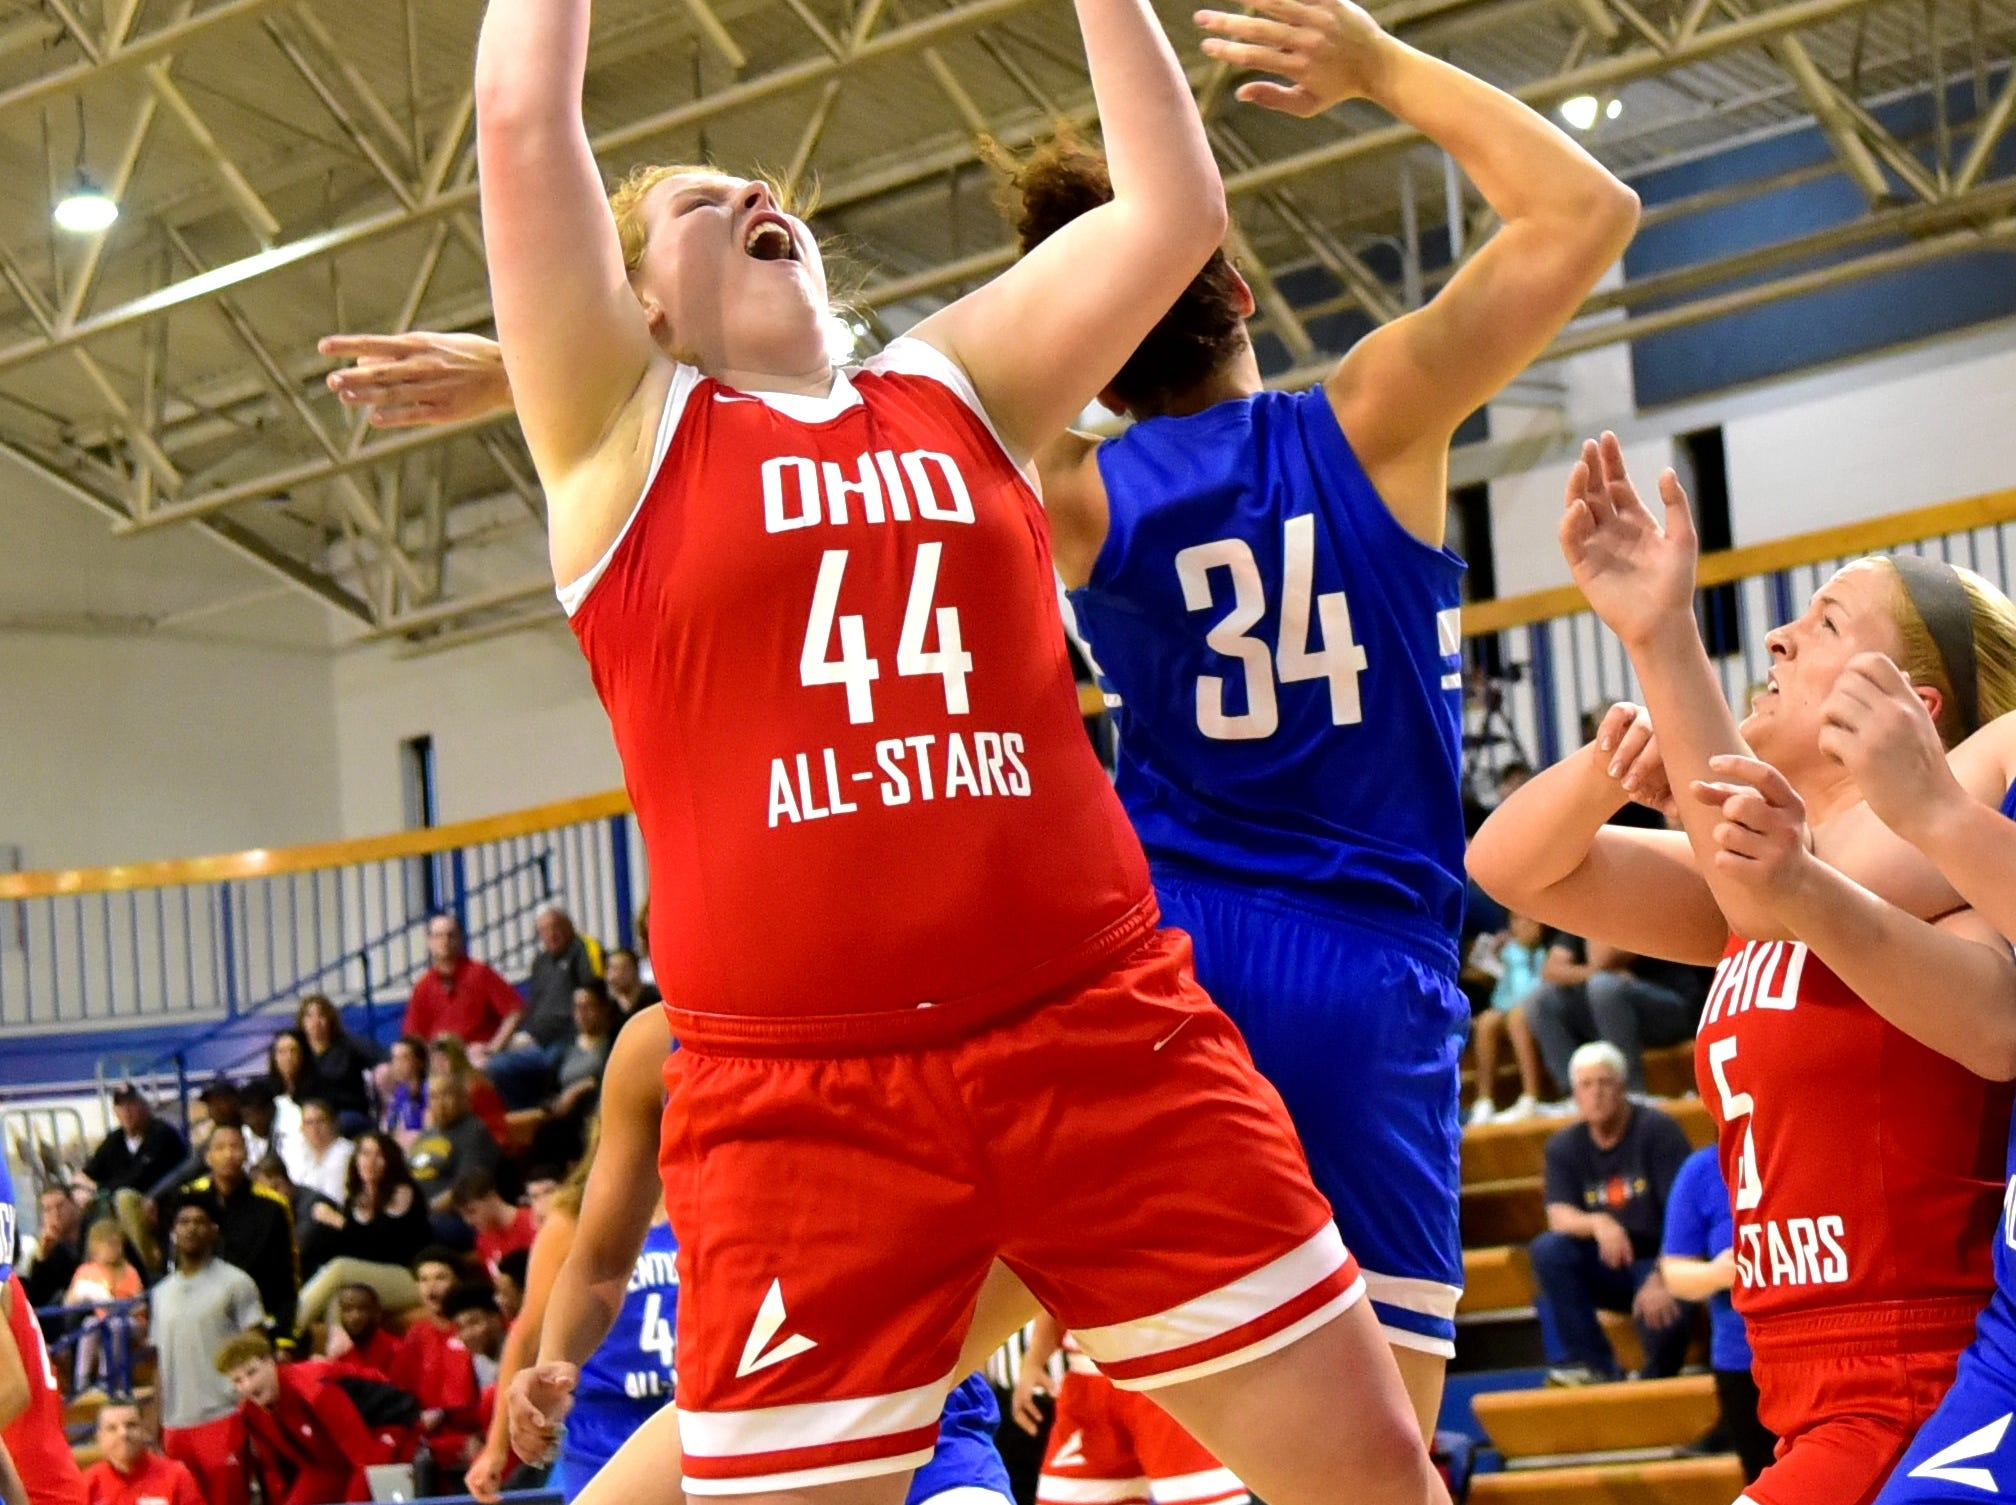 Emma Shaffer (44) of Ursuline Academy pulls down a rebound for the Ohio girls team at the 28th Annual Ohio-Kentucky All Star Games played at Thomas More University, April 13, 2019